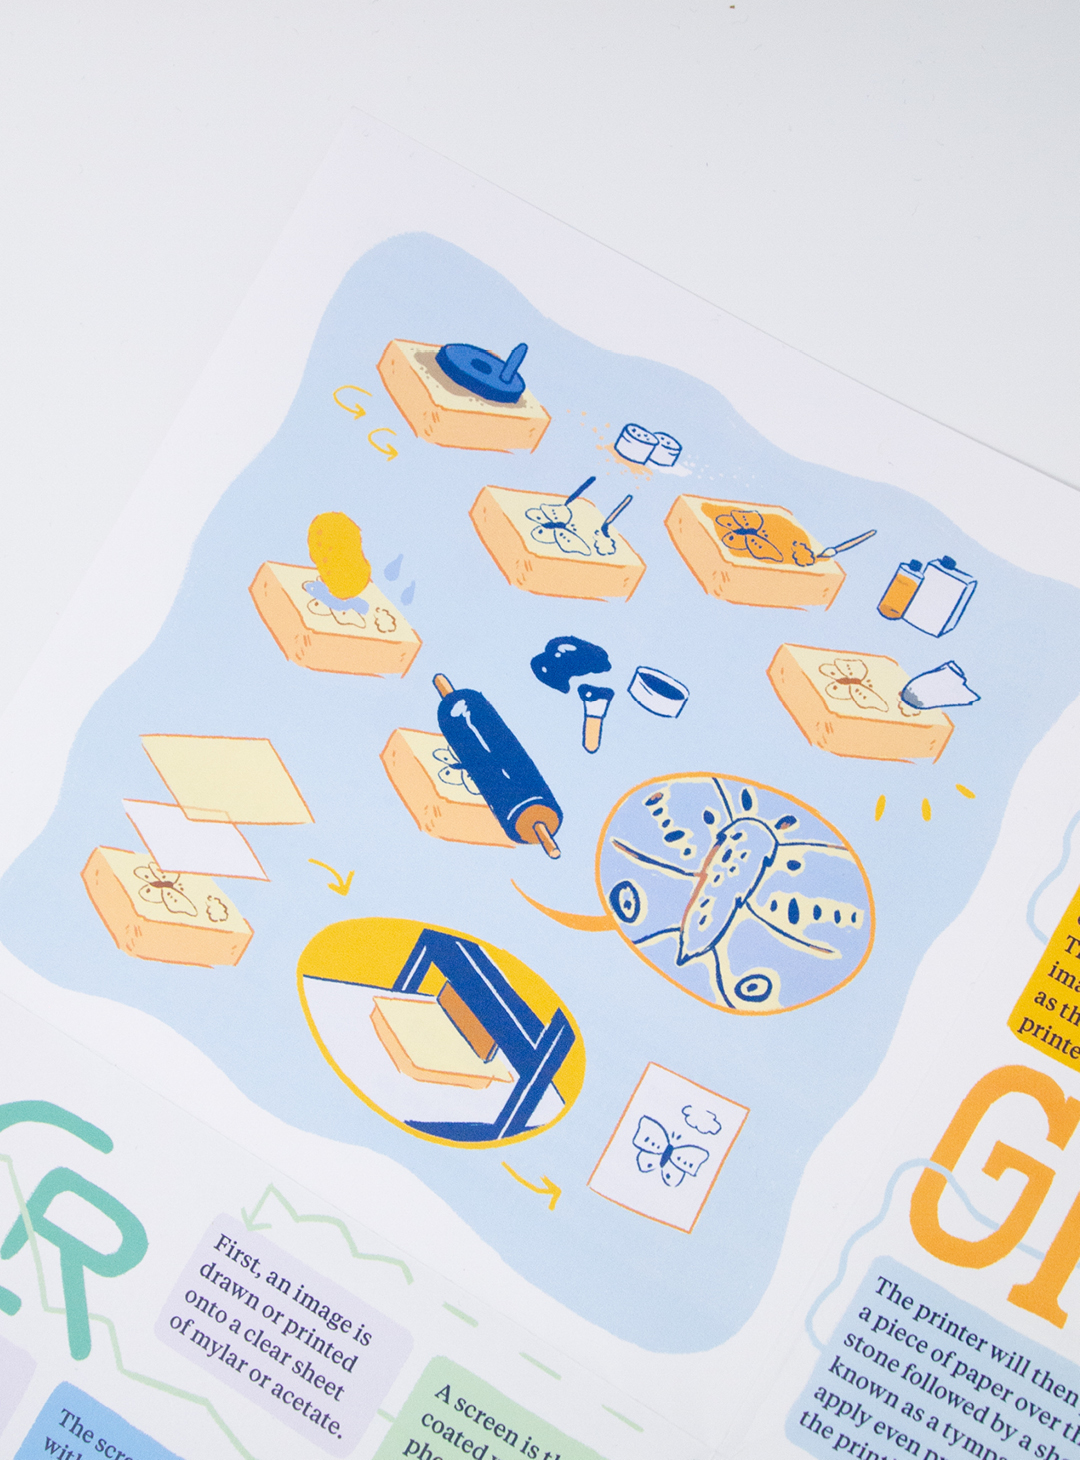 Detail shot of the stone lithography illustration. Set on a light blue back ground, it shows the process of printing with a yellow color scheme.